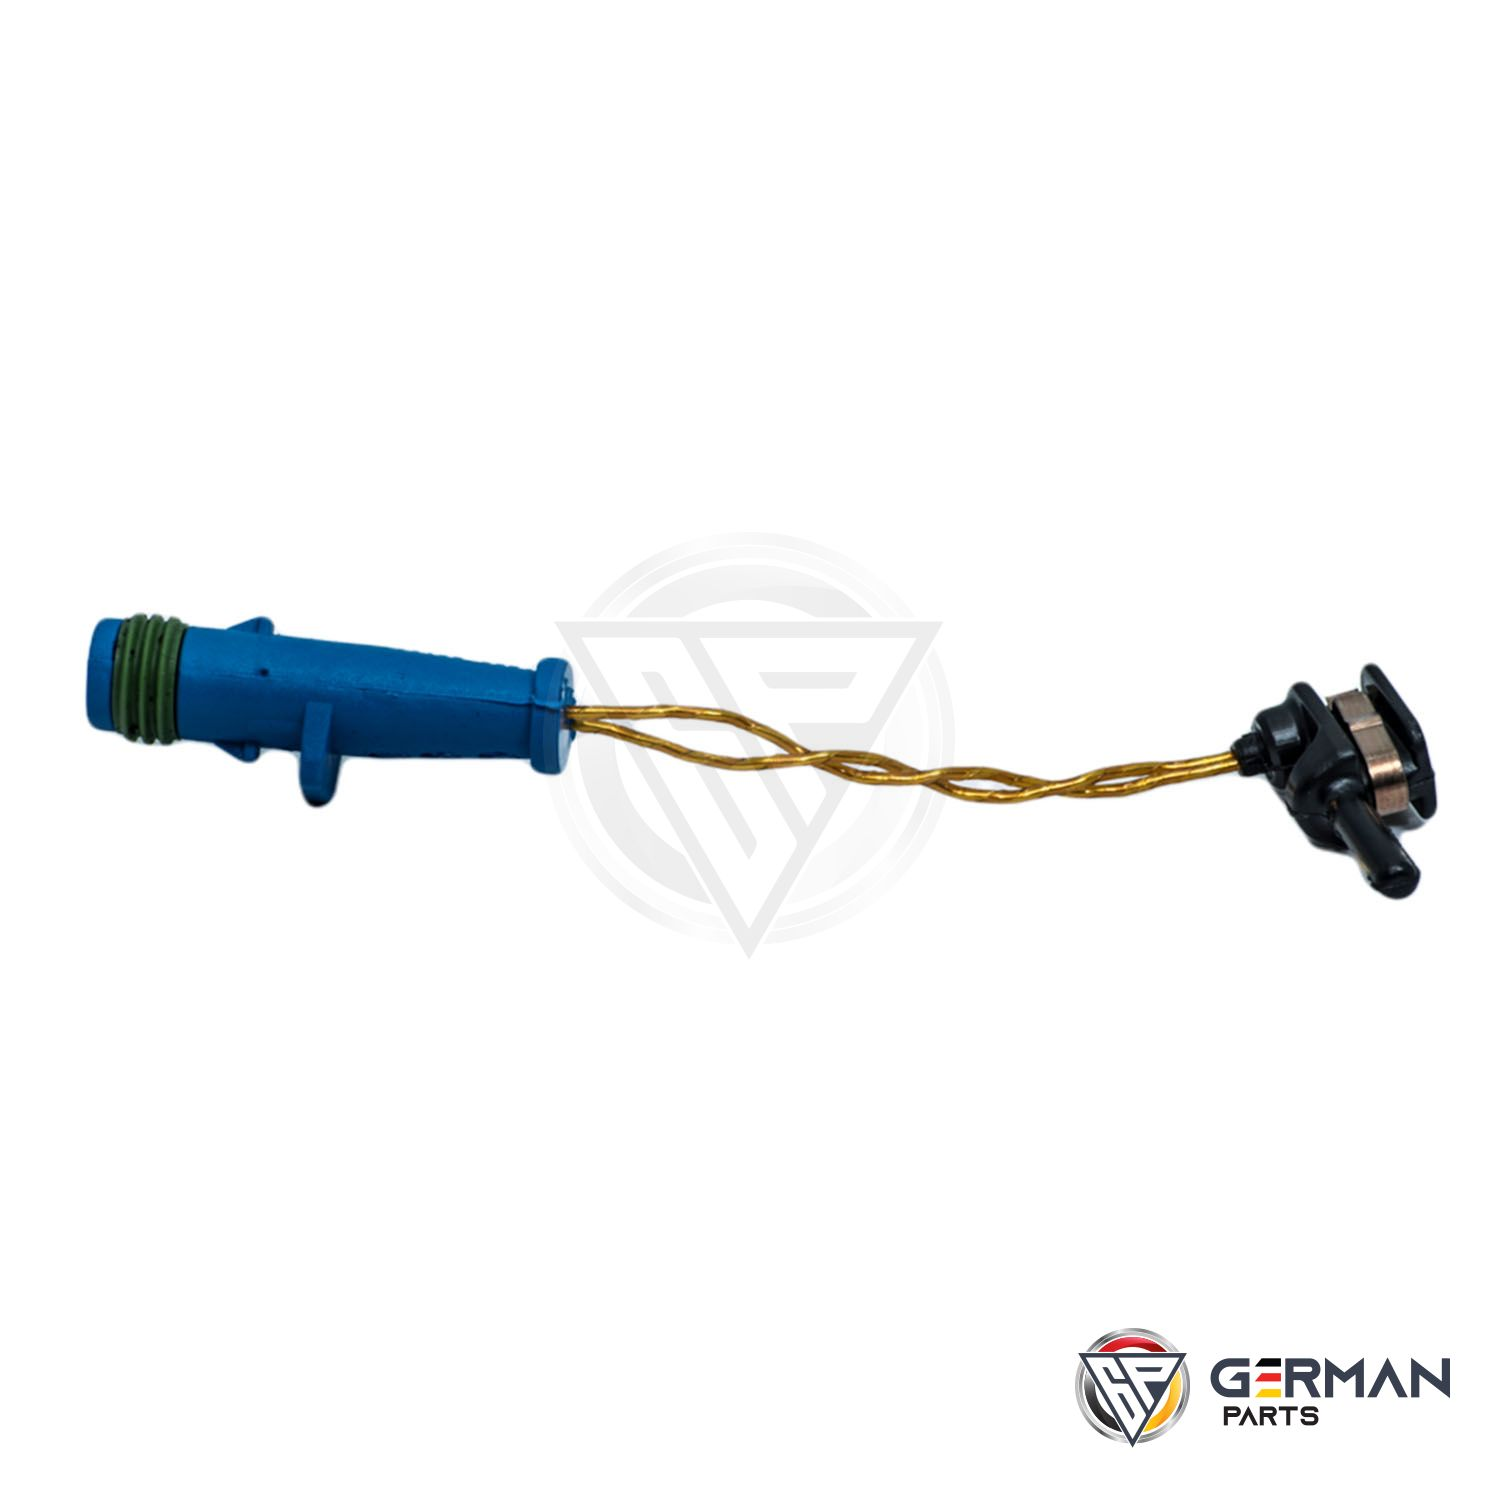 Buy Mercedes Benz Brake Sensor 1695401617 - German Parts